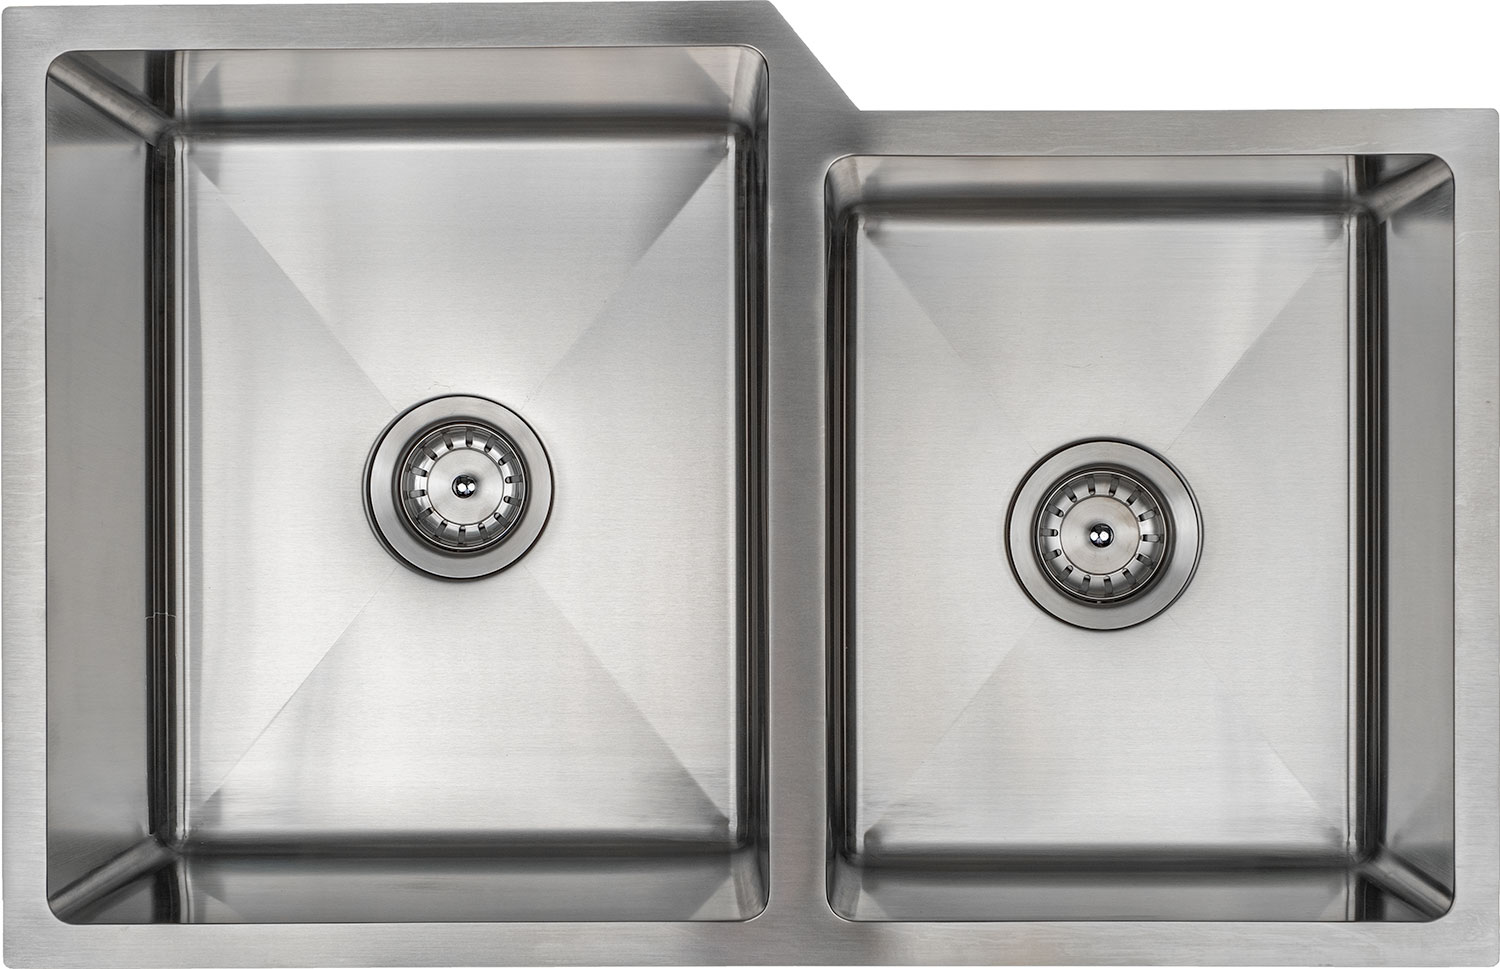 EVO 6040 Double Bowl small radius kitchen sink